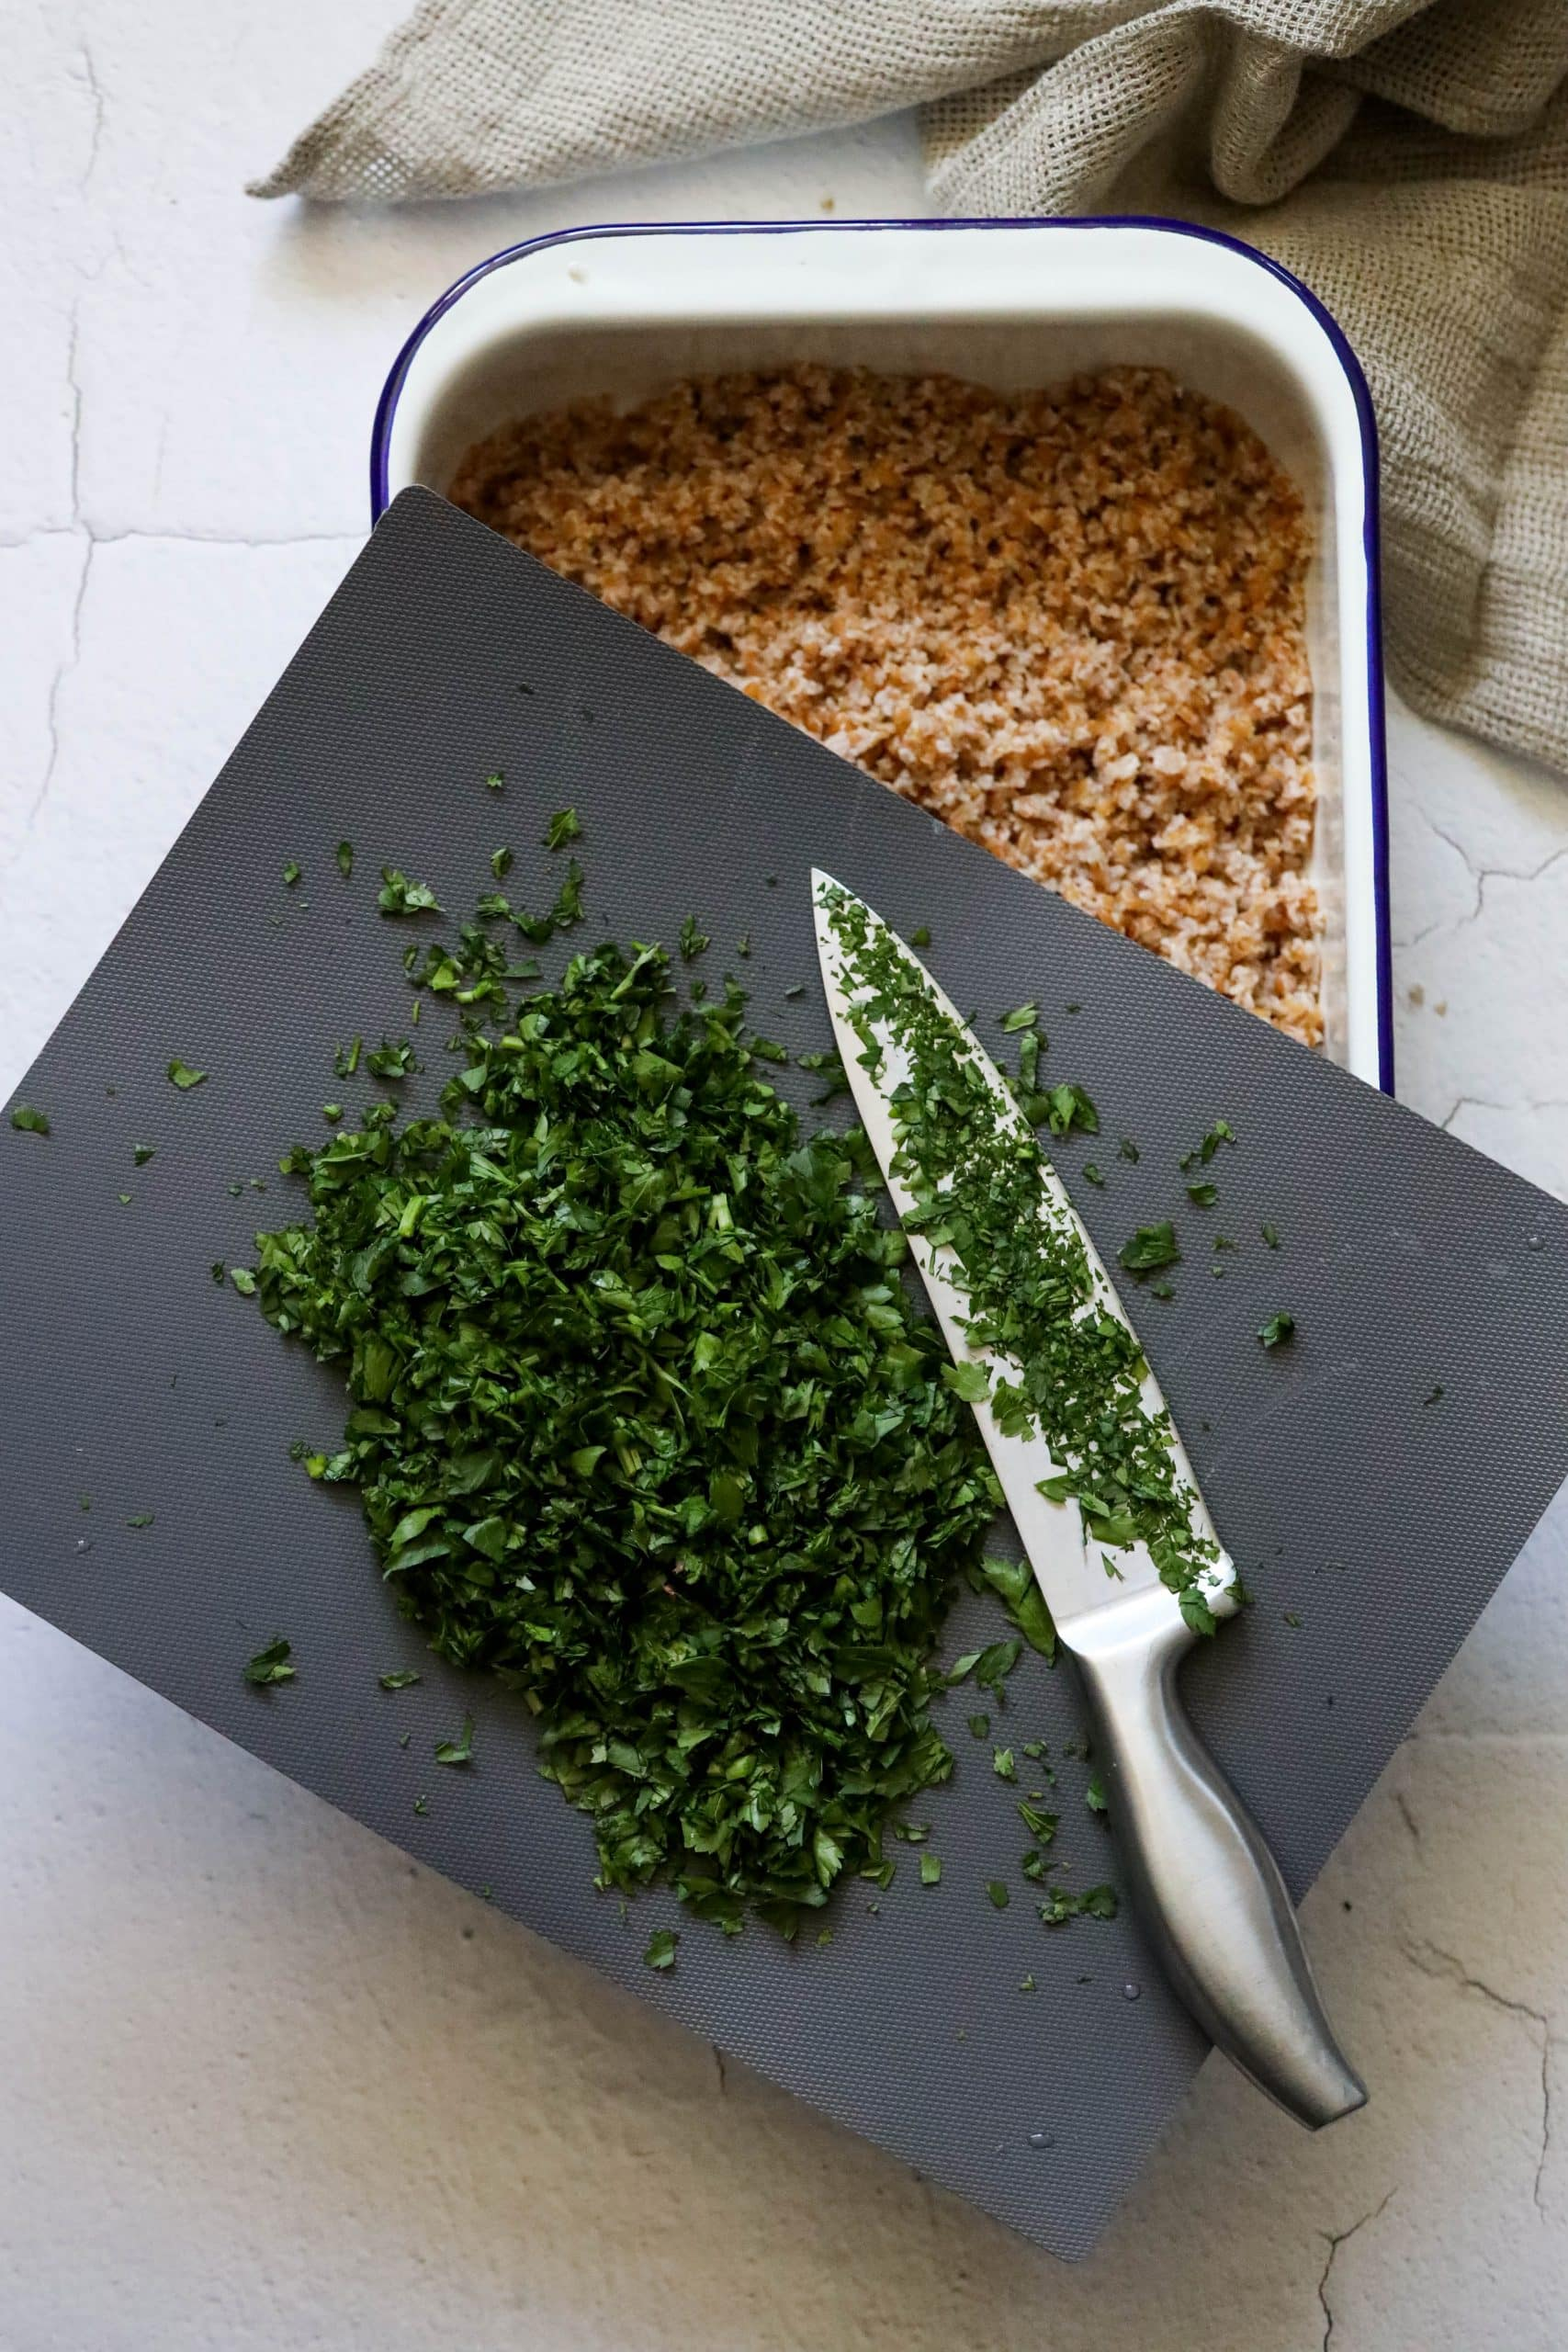 picture of finely minced parsley on a cutting board